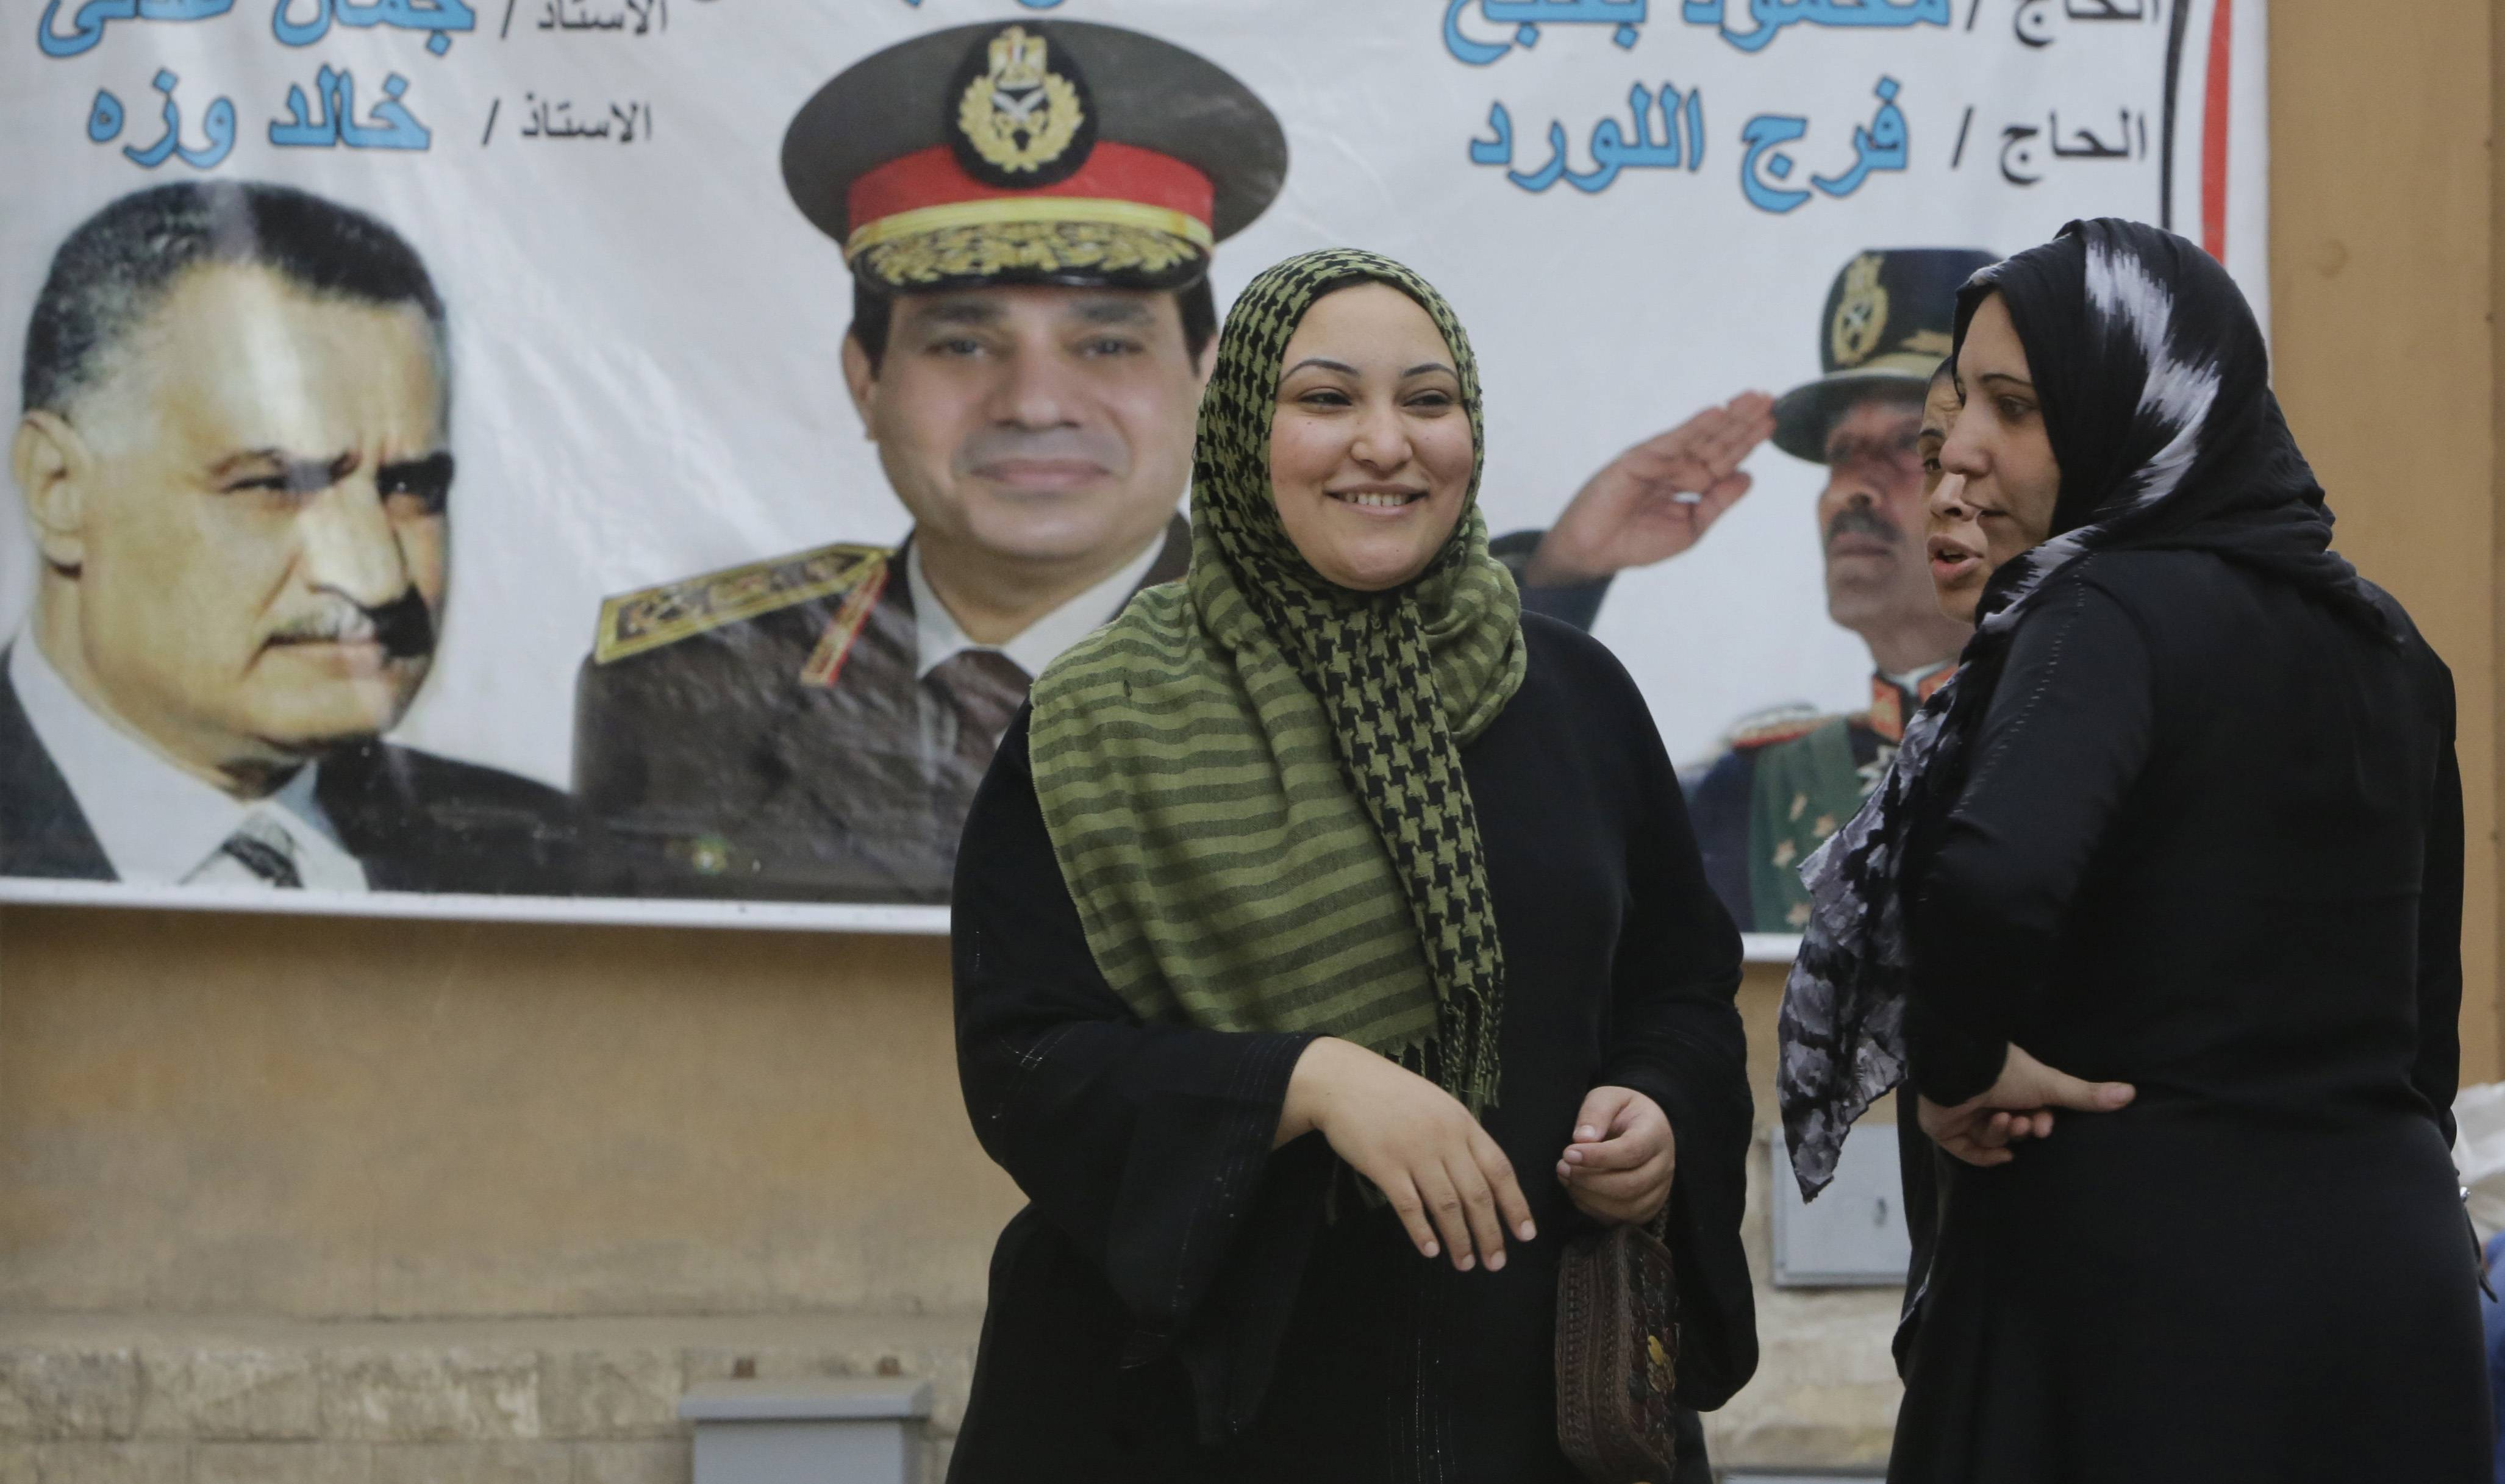 Egypt's interim president urges Egyptians to vote